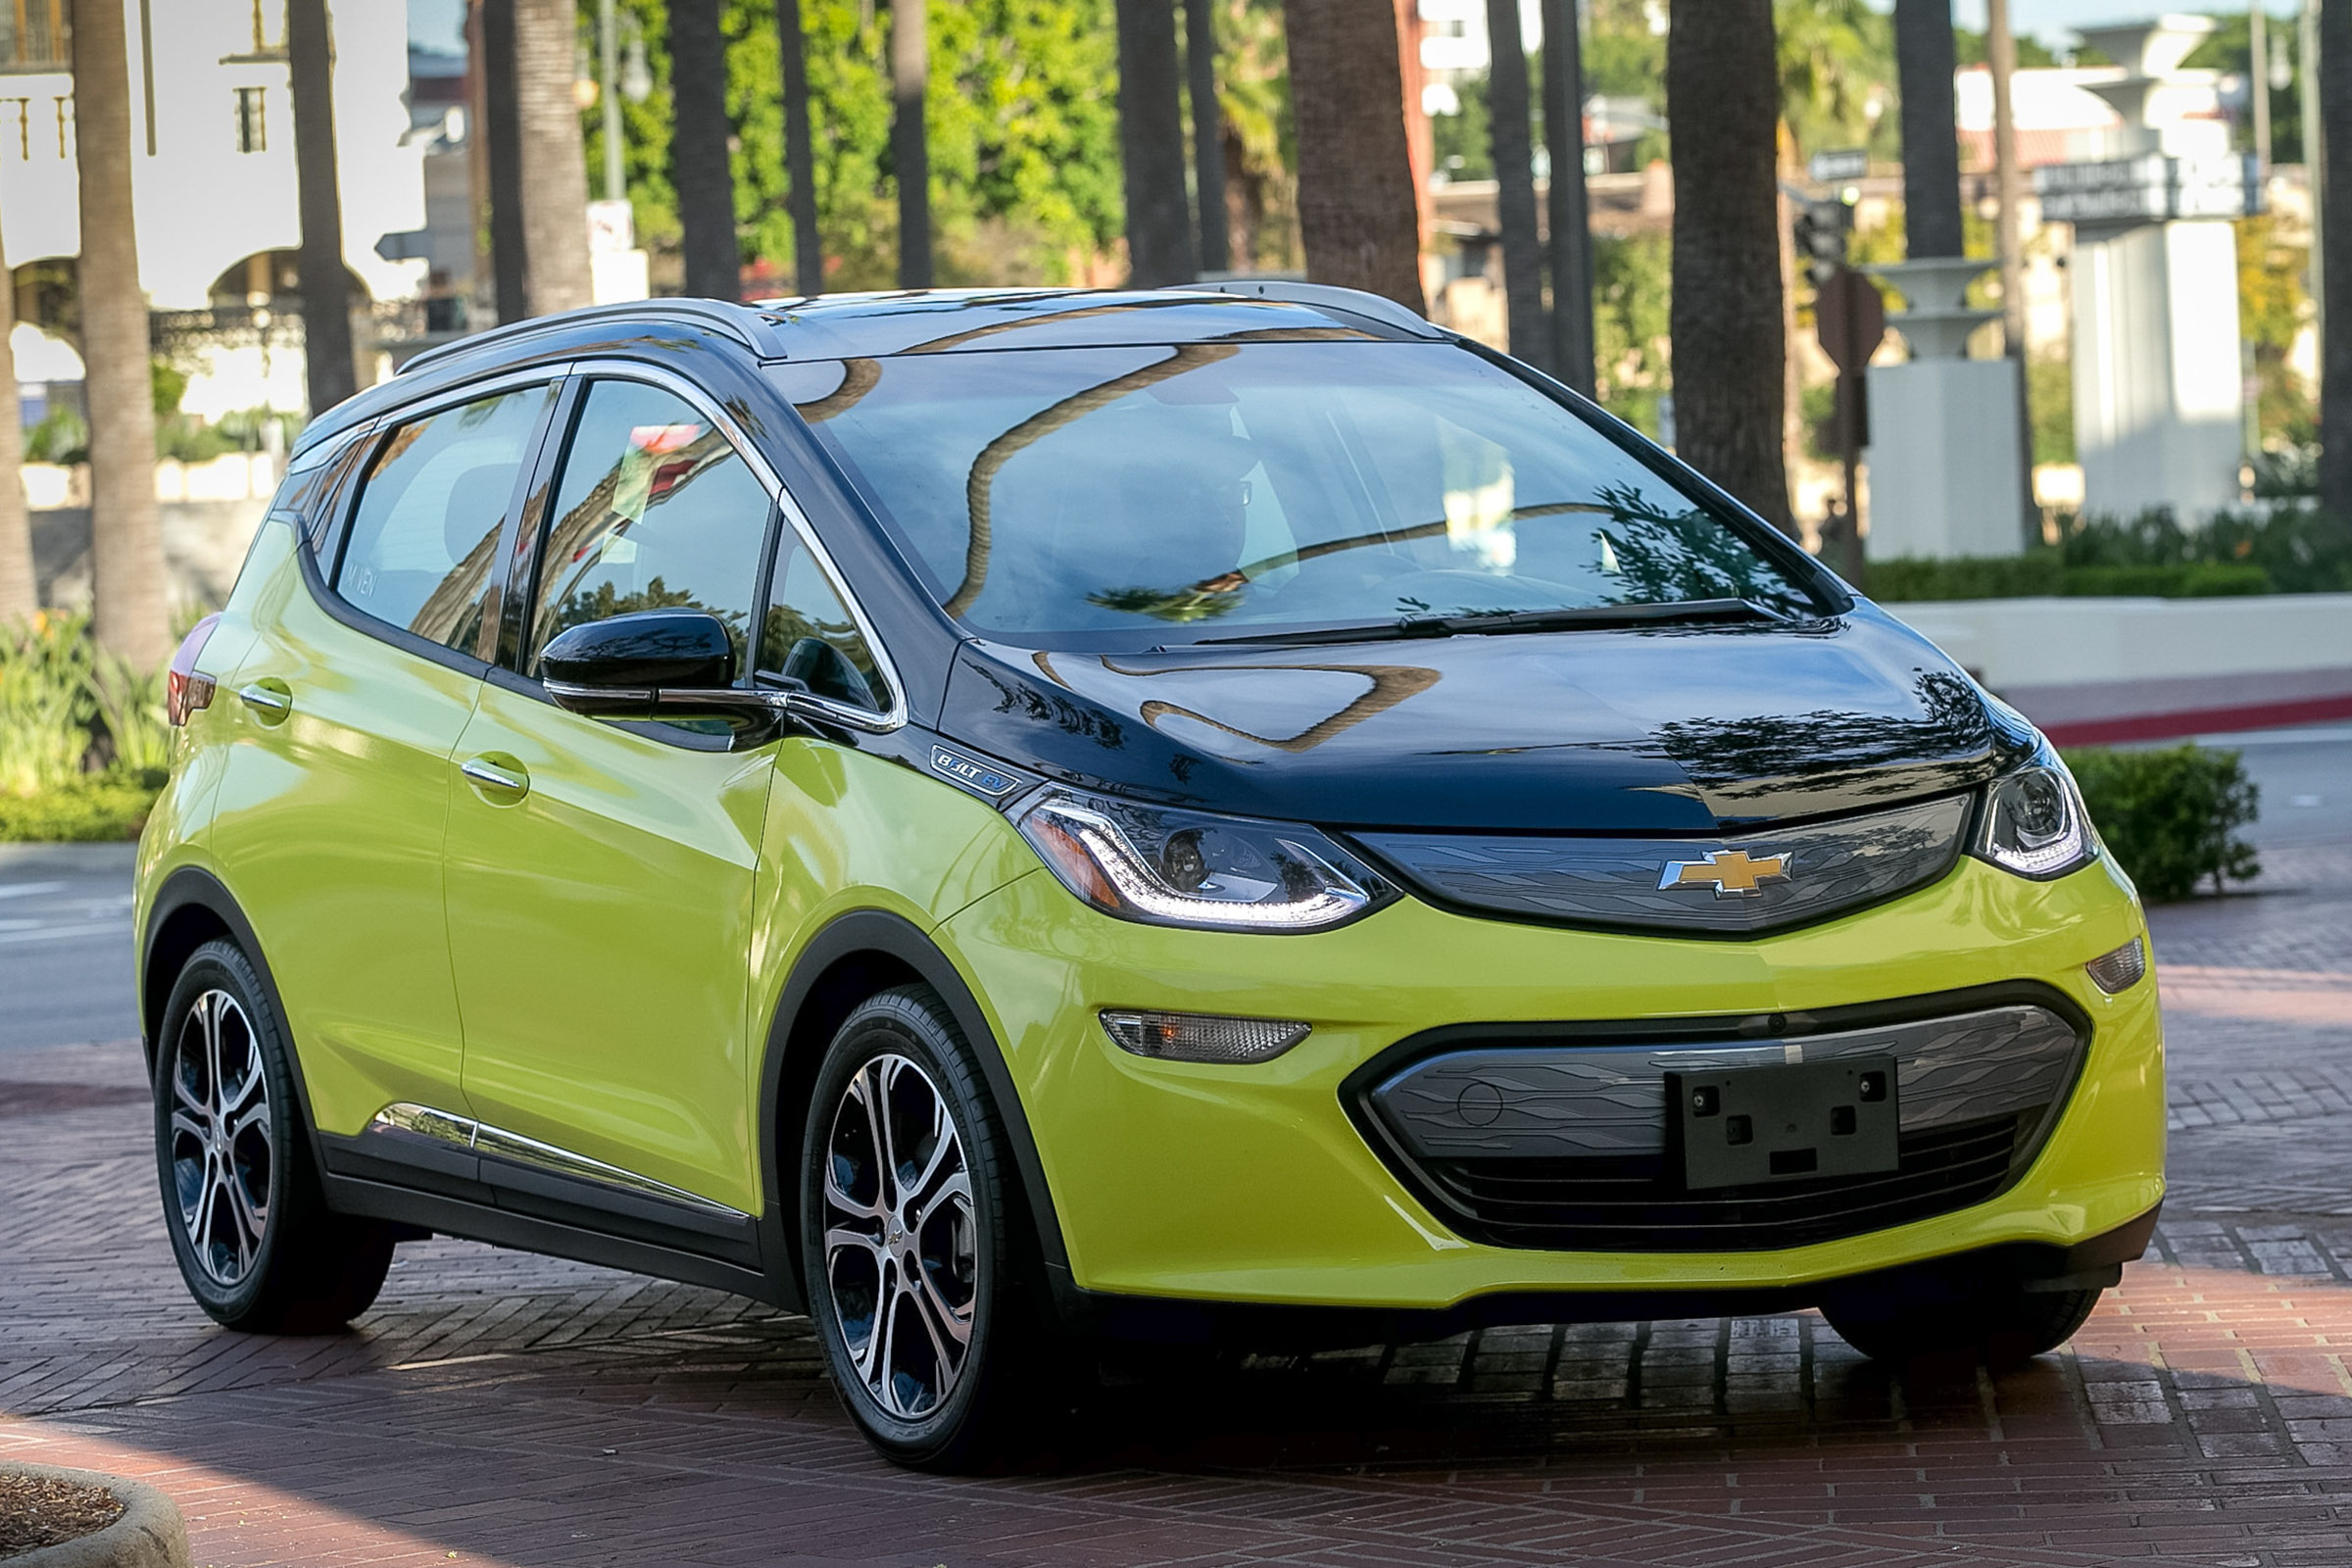 GM's Maven offers car-sharing services in 11 cities as of mid-2018.